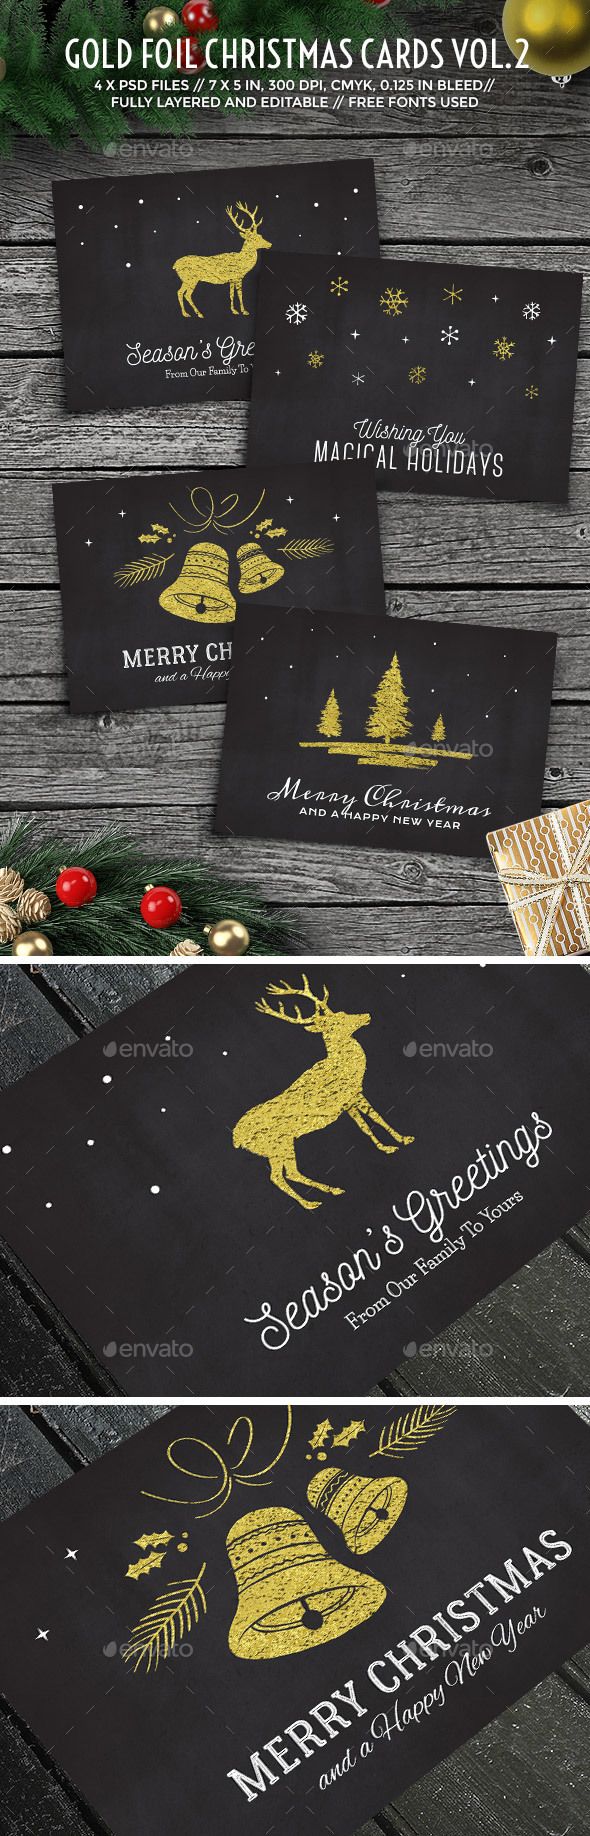 Gold Foil Christmas Cards Vol. 2